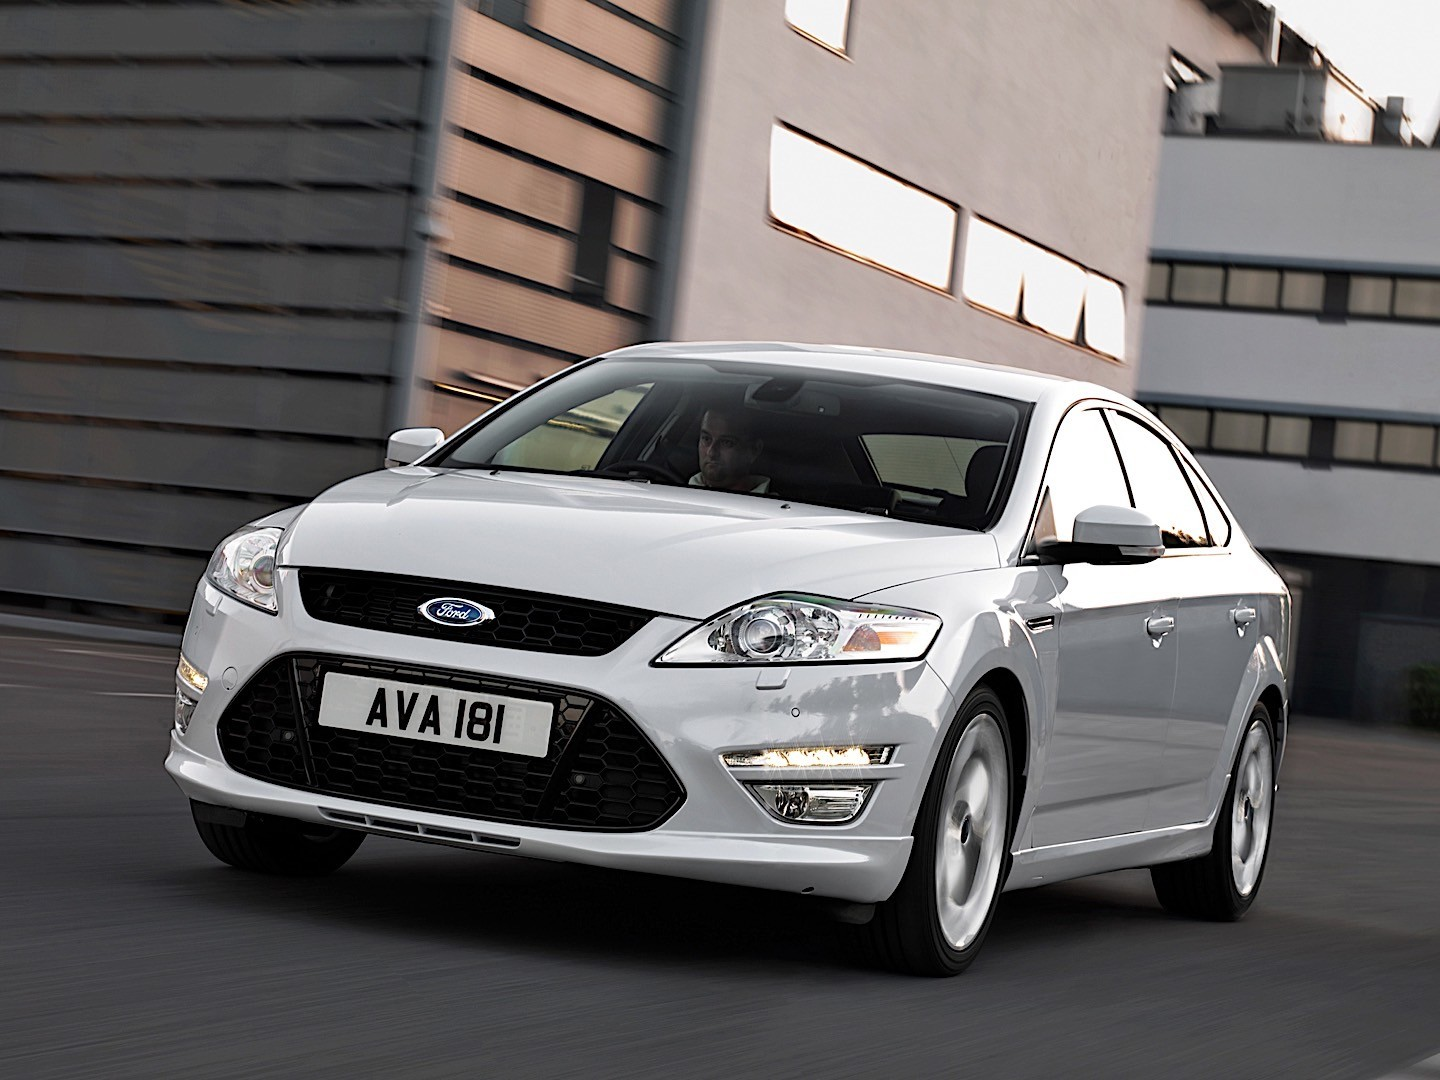 ford mondeo hatchback specs photos 2010 2011 2012 2013 2014 autoevolution. Black Bedroom Furniture Sets. Home Design Ideas